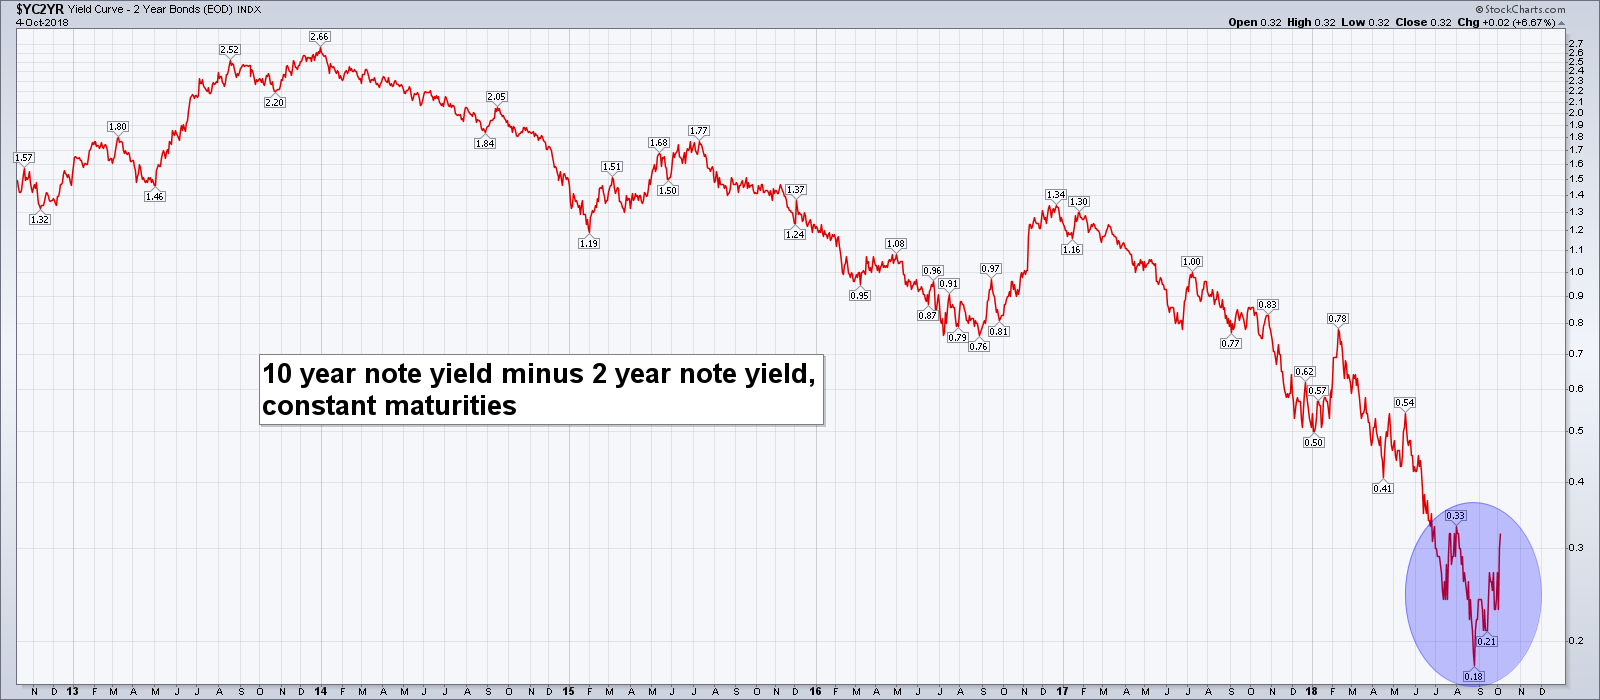 10 Year Note Yield, Nov 2013 - Oct 2018